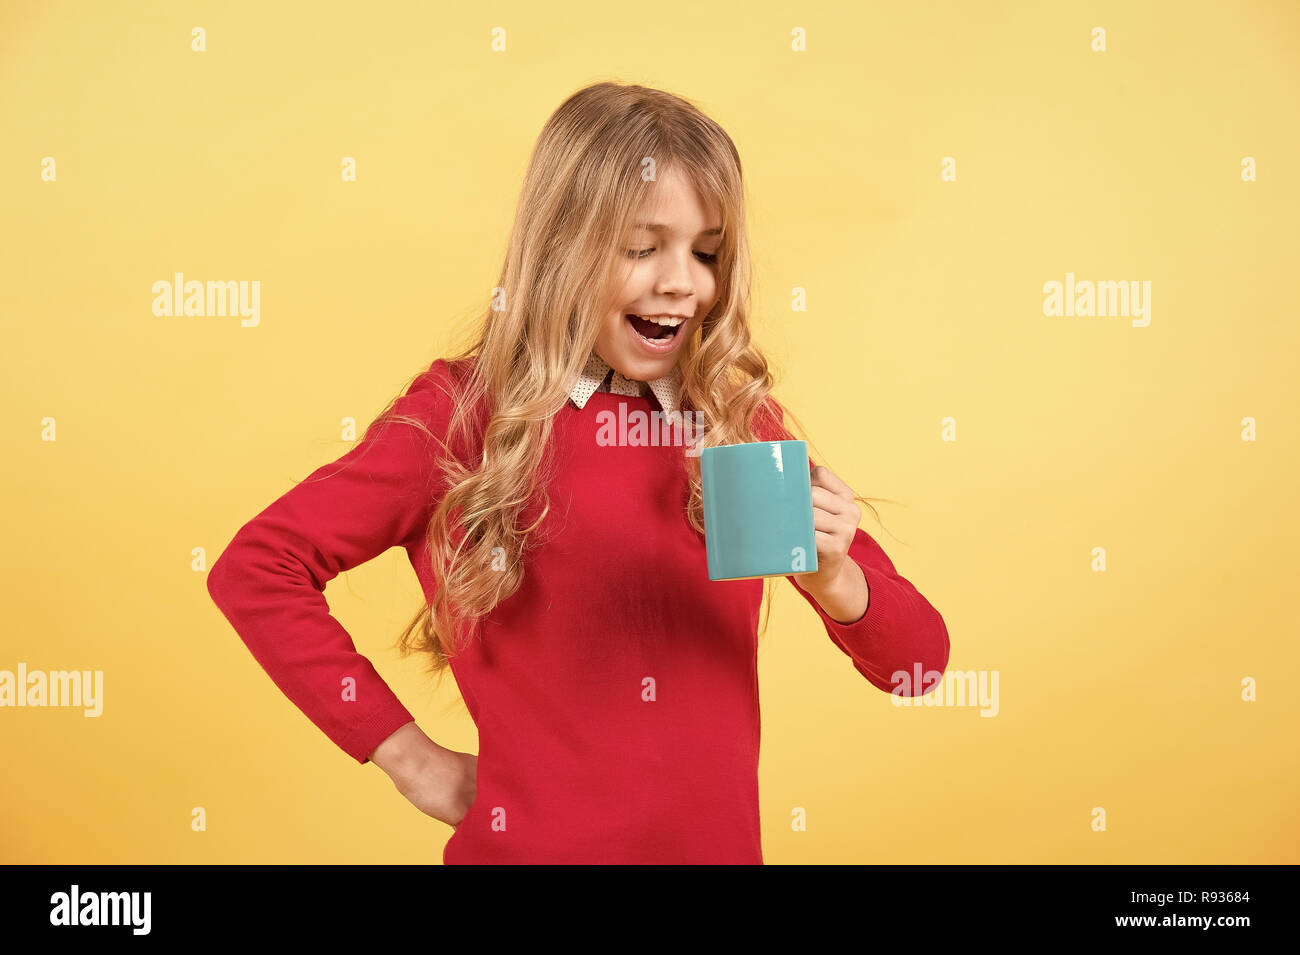 Tea or coffee break. Girl with long blond hair in red sweater hold mug. Child smile with blue cup on orange background. Thirst, dehydration concept. Health and healthy drink. - Stock Image